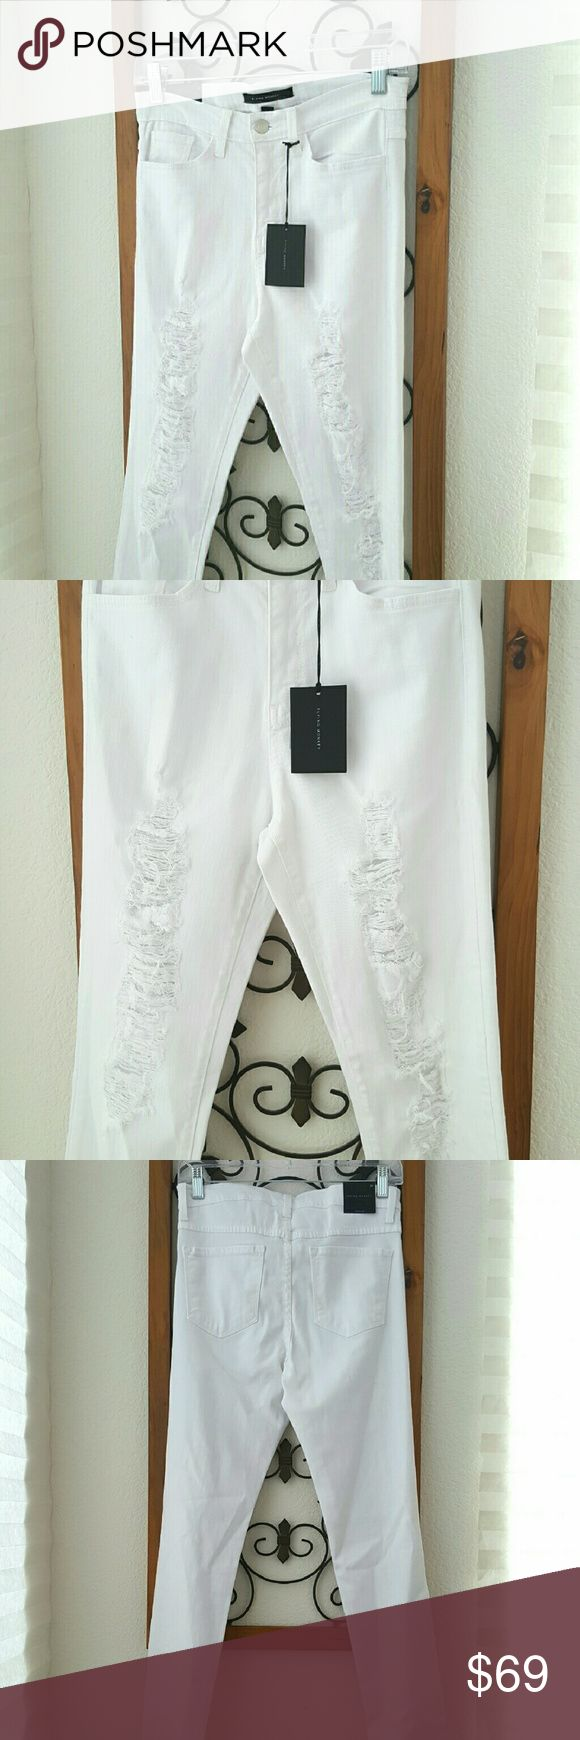 """NEW! Flying Monkeys White Distressed Jeans Super comfy, stretchy and soft material. Mid rise. New with tags. Skinny leg. Inseam: 31"""". Made in USA. Material: cotton, rayon and polyester. Flying Monkey Jeans Skinny"""